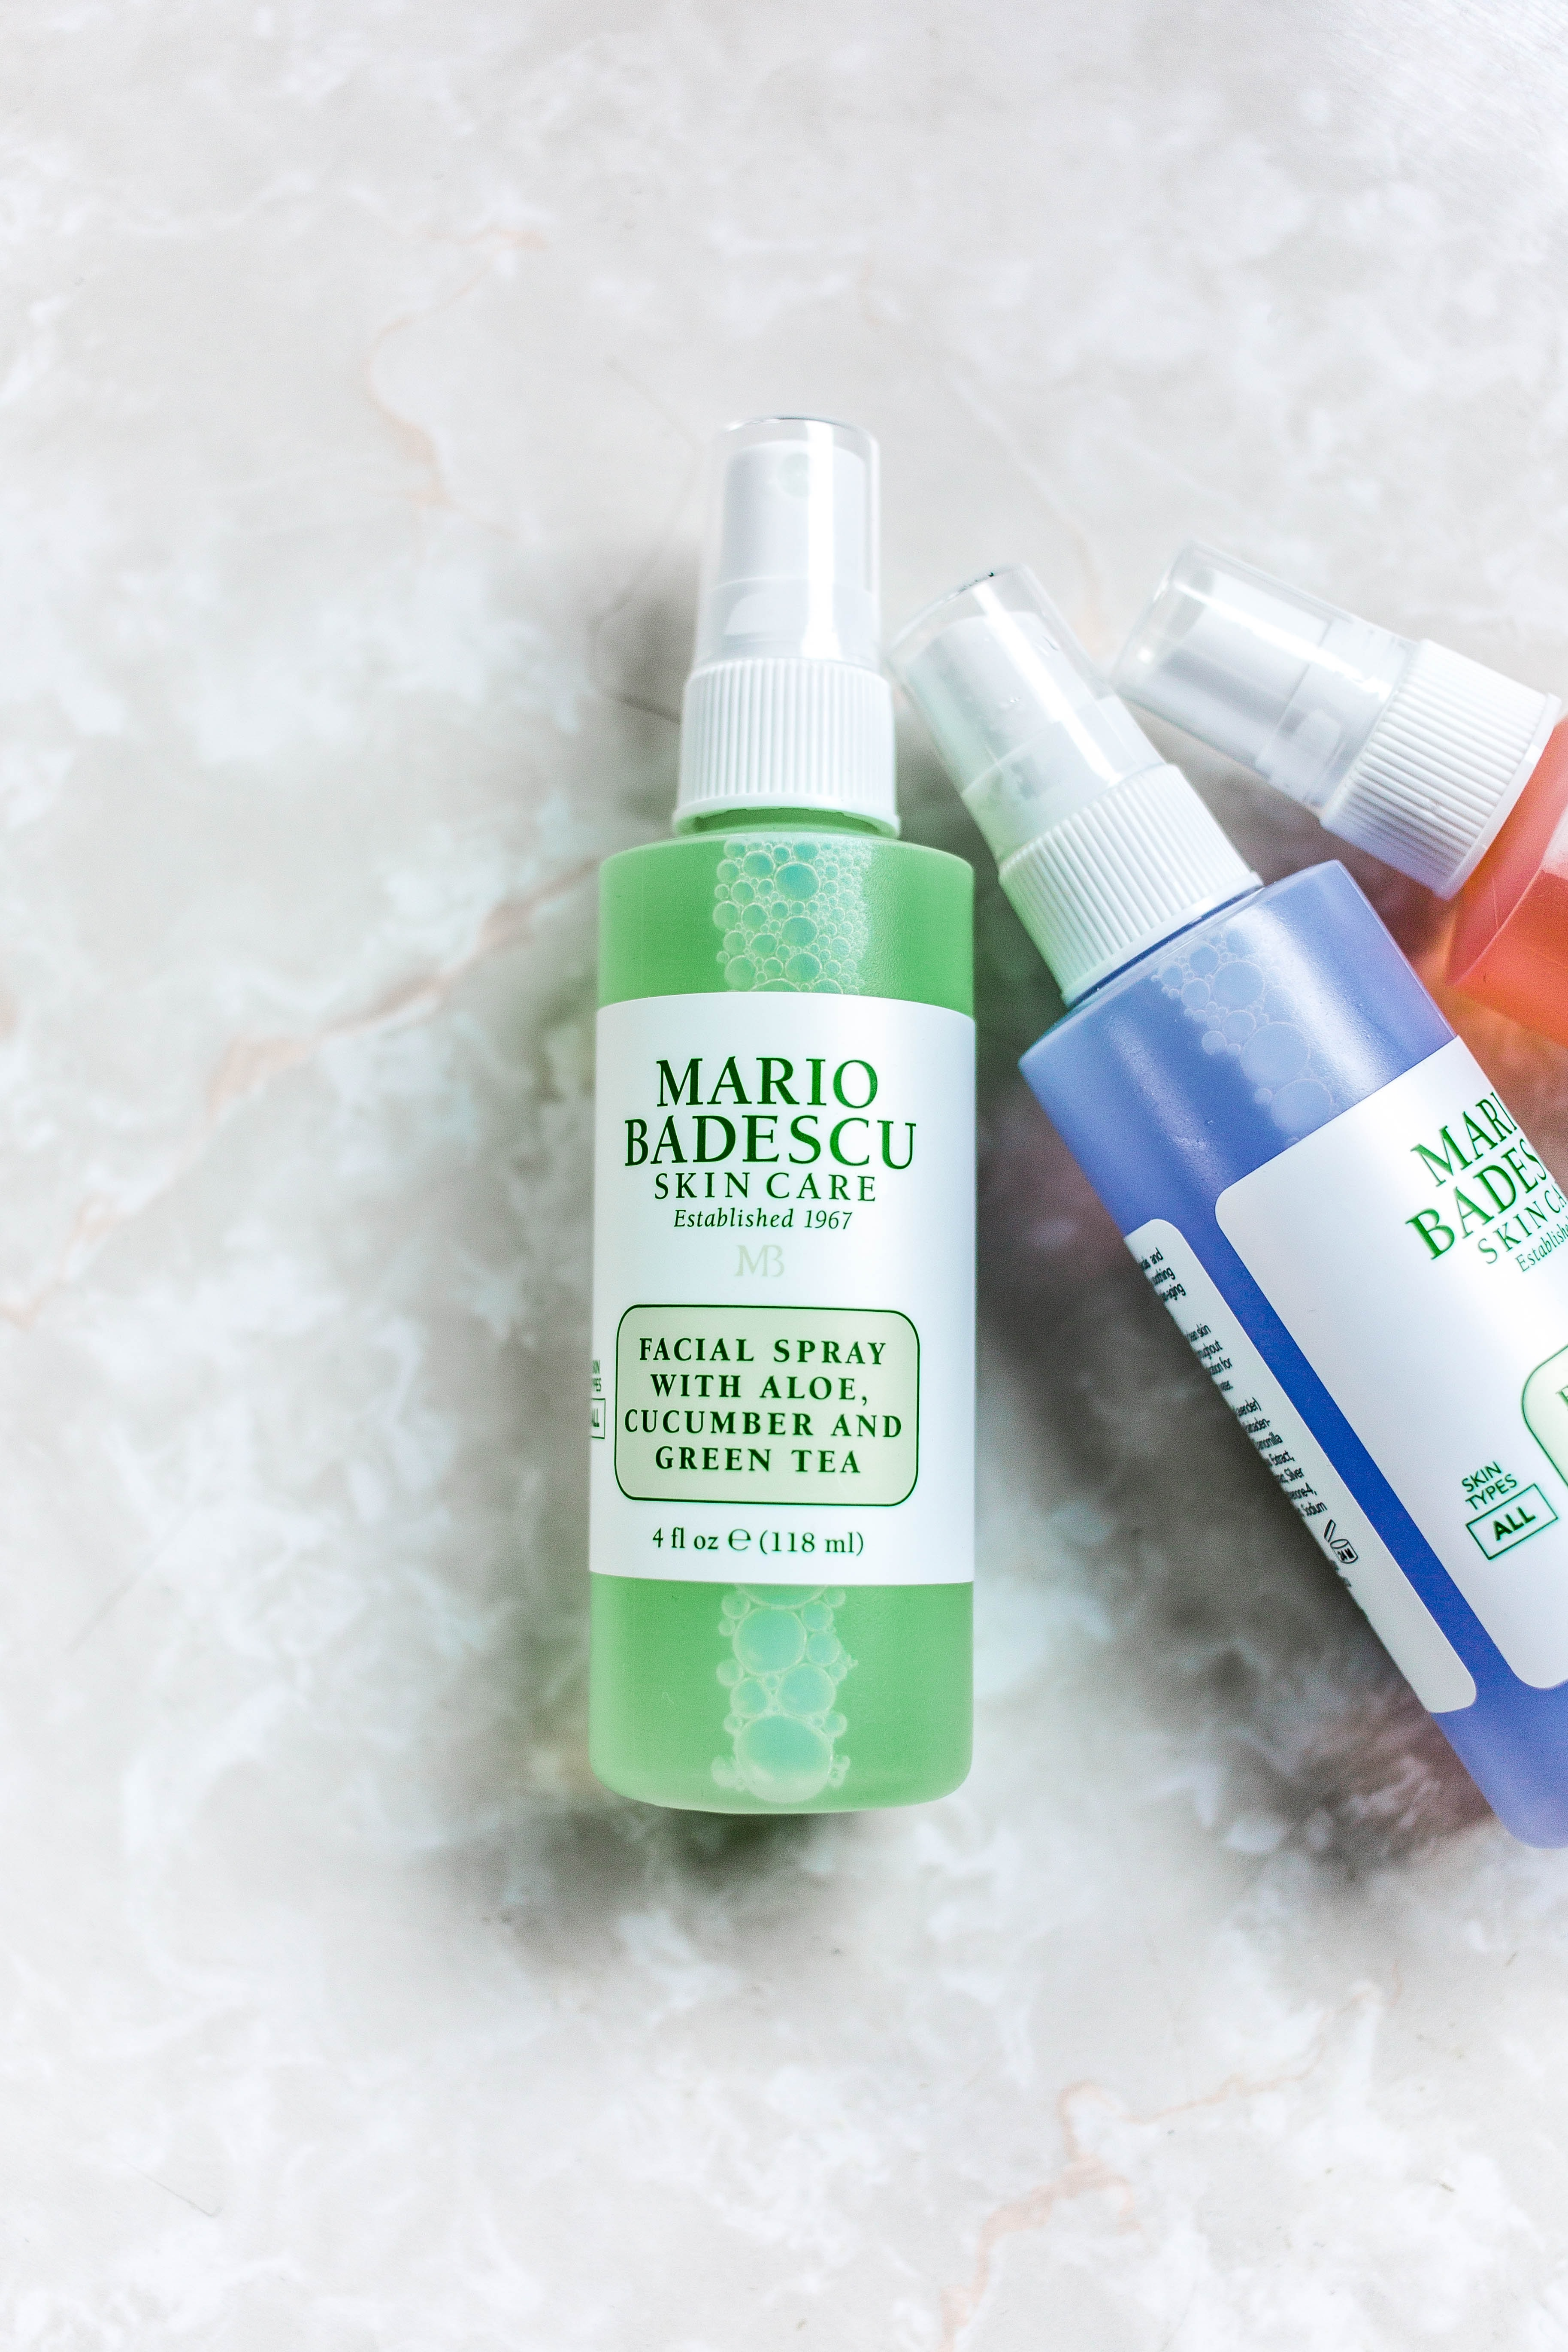 Mario Badescu bottle